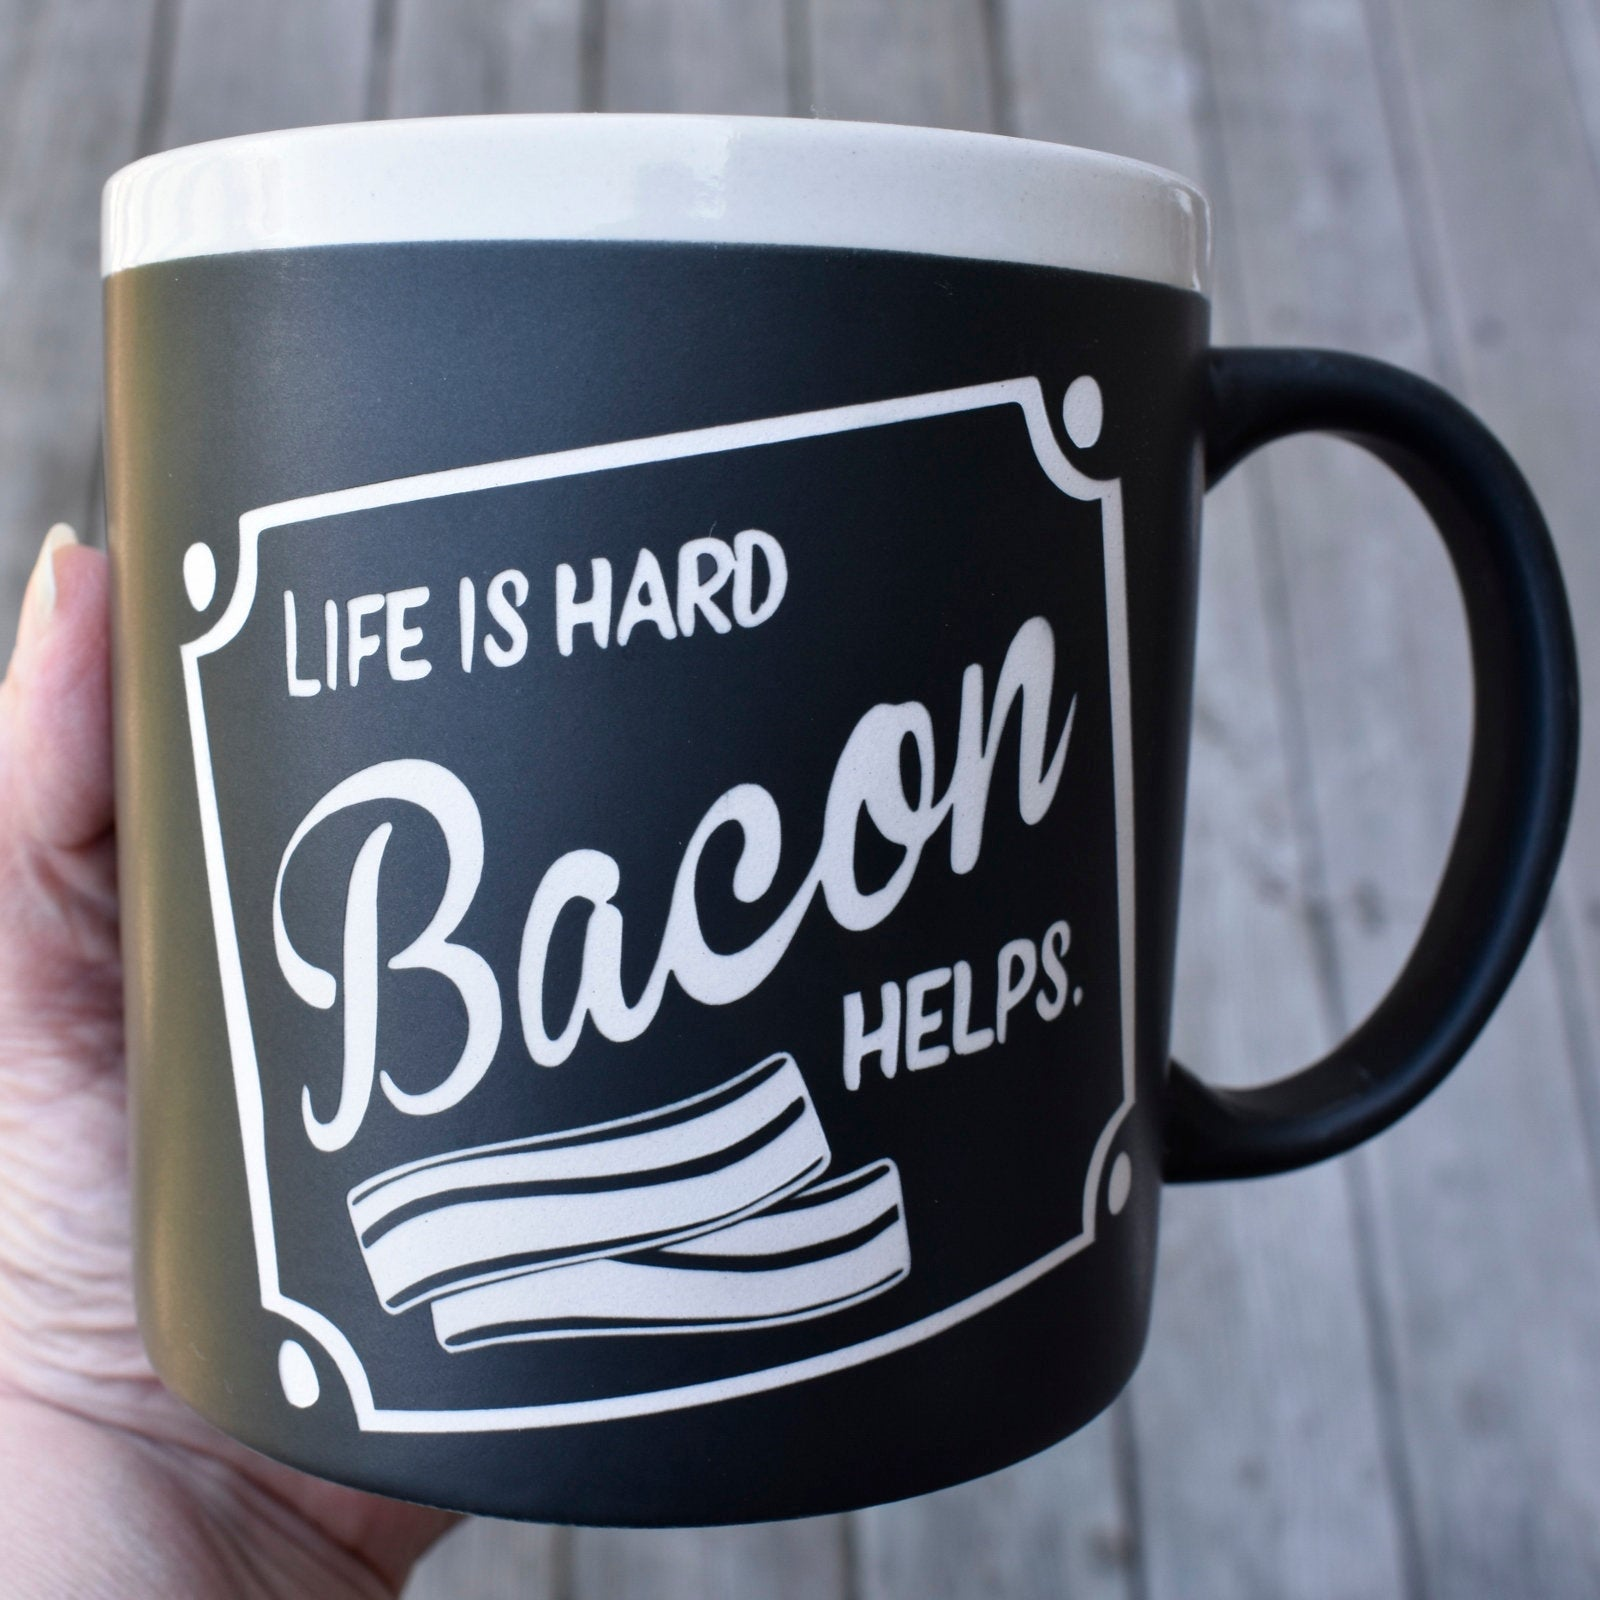 Jumbo Chalkboard Life is Hard Bacon Helps Coffee Mug | Funny Coffee Mug | Bacon Lover Gift | Funny Bacon Gifts | Camper Gift | Camping Gift